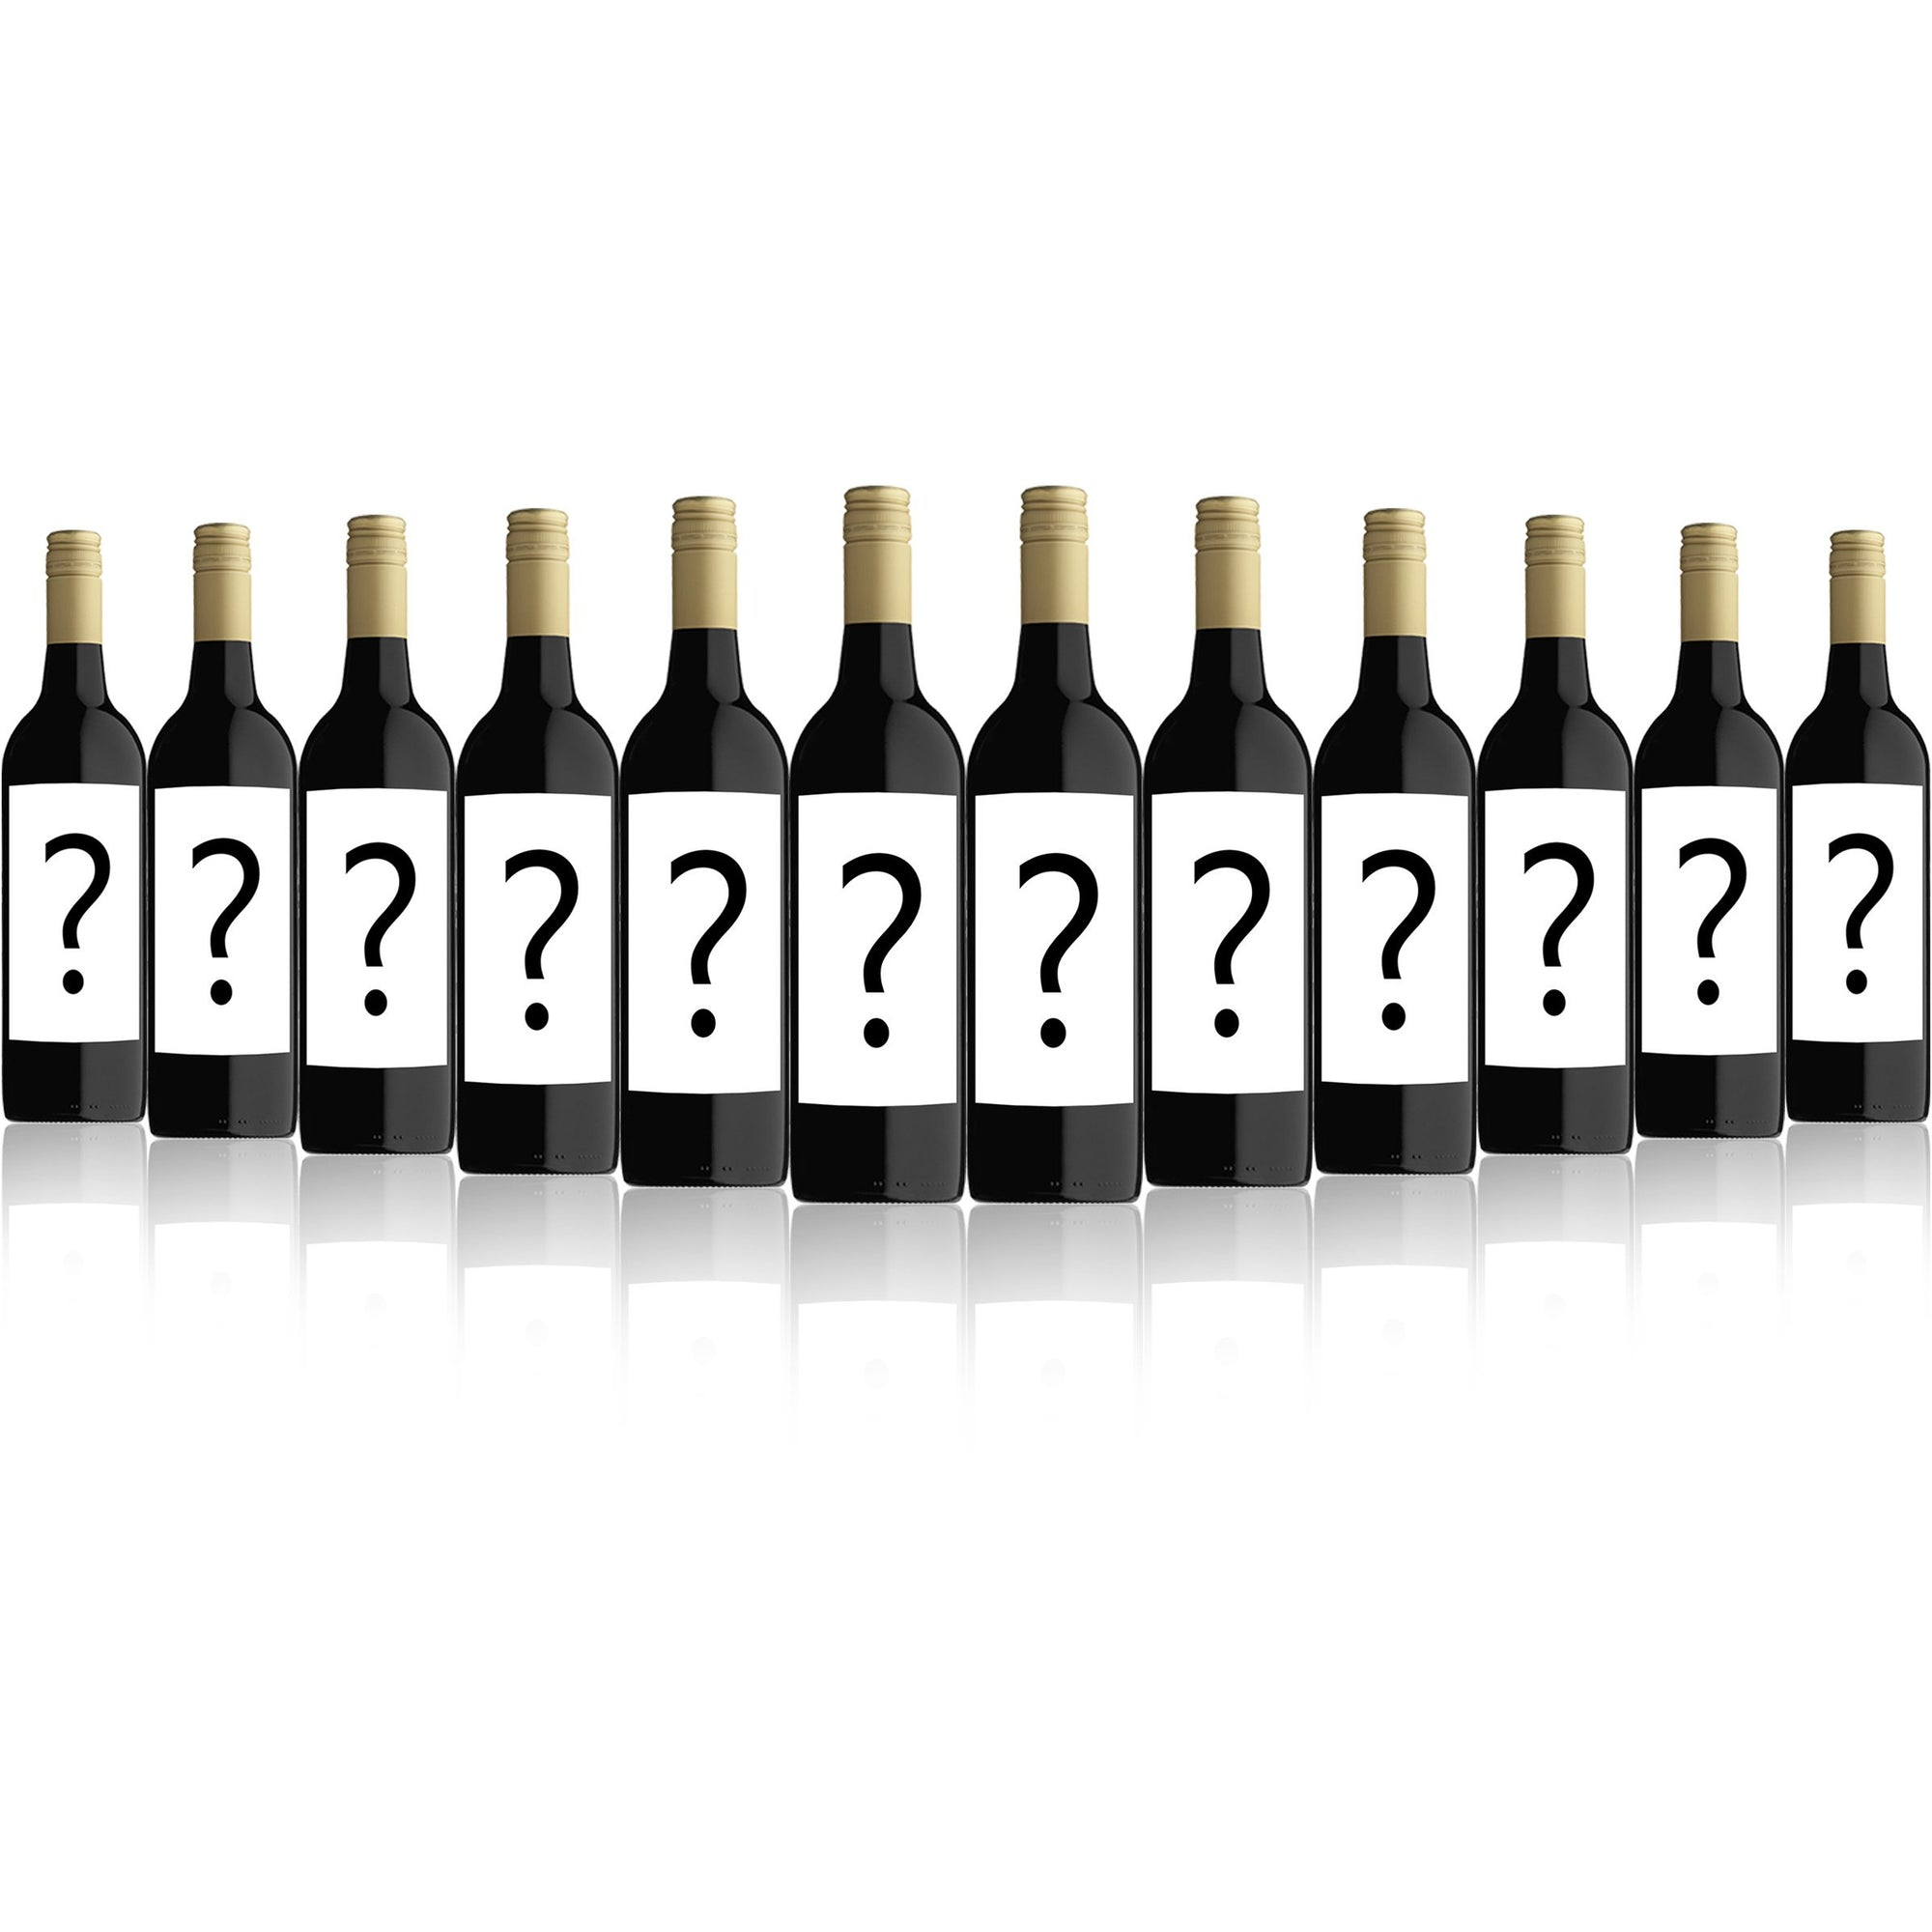 Mystery Secret Winery Cabernet Sauvignon 2018 (12 Bottles)